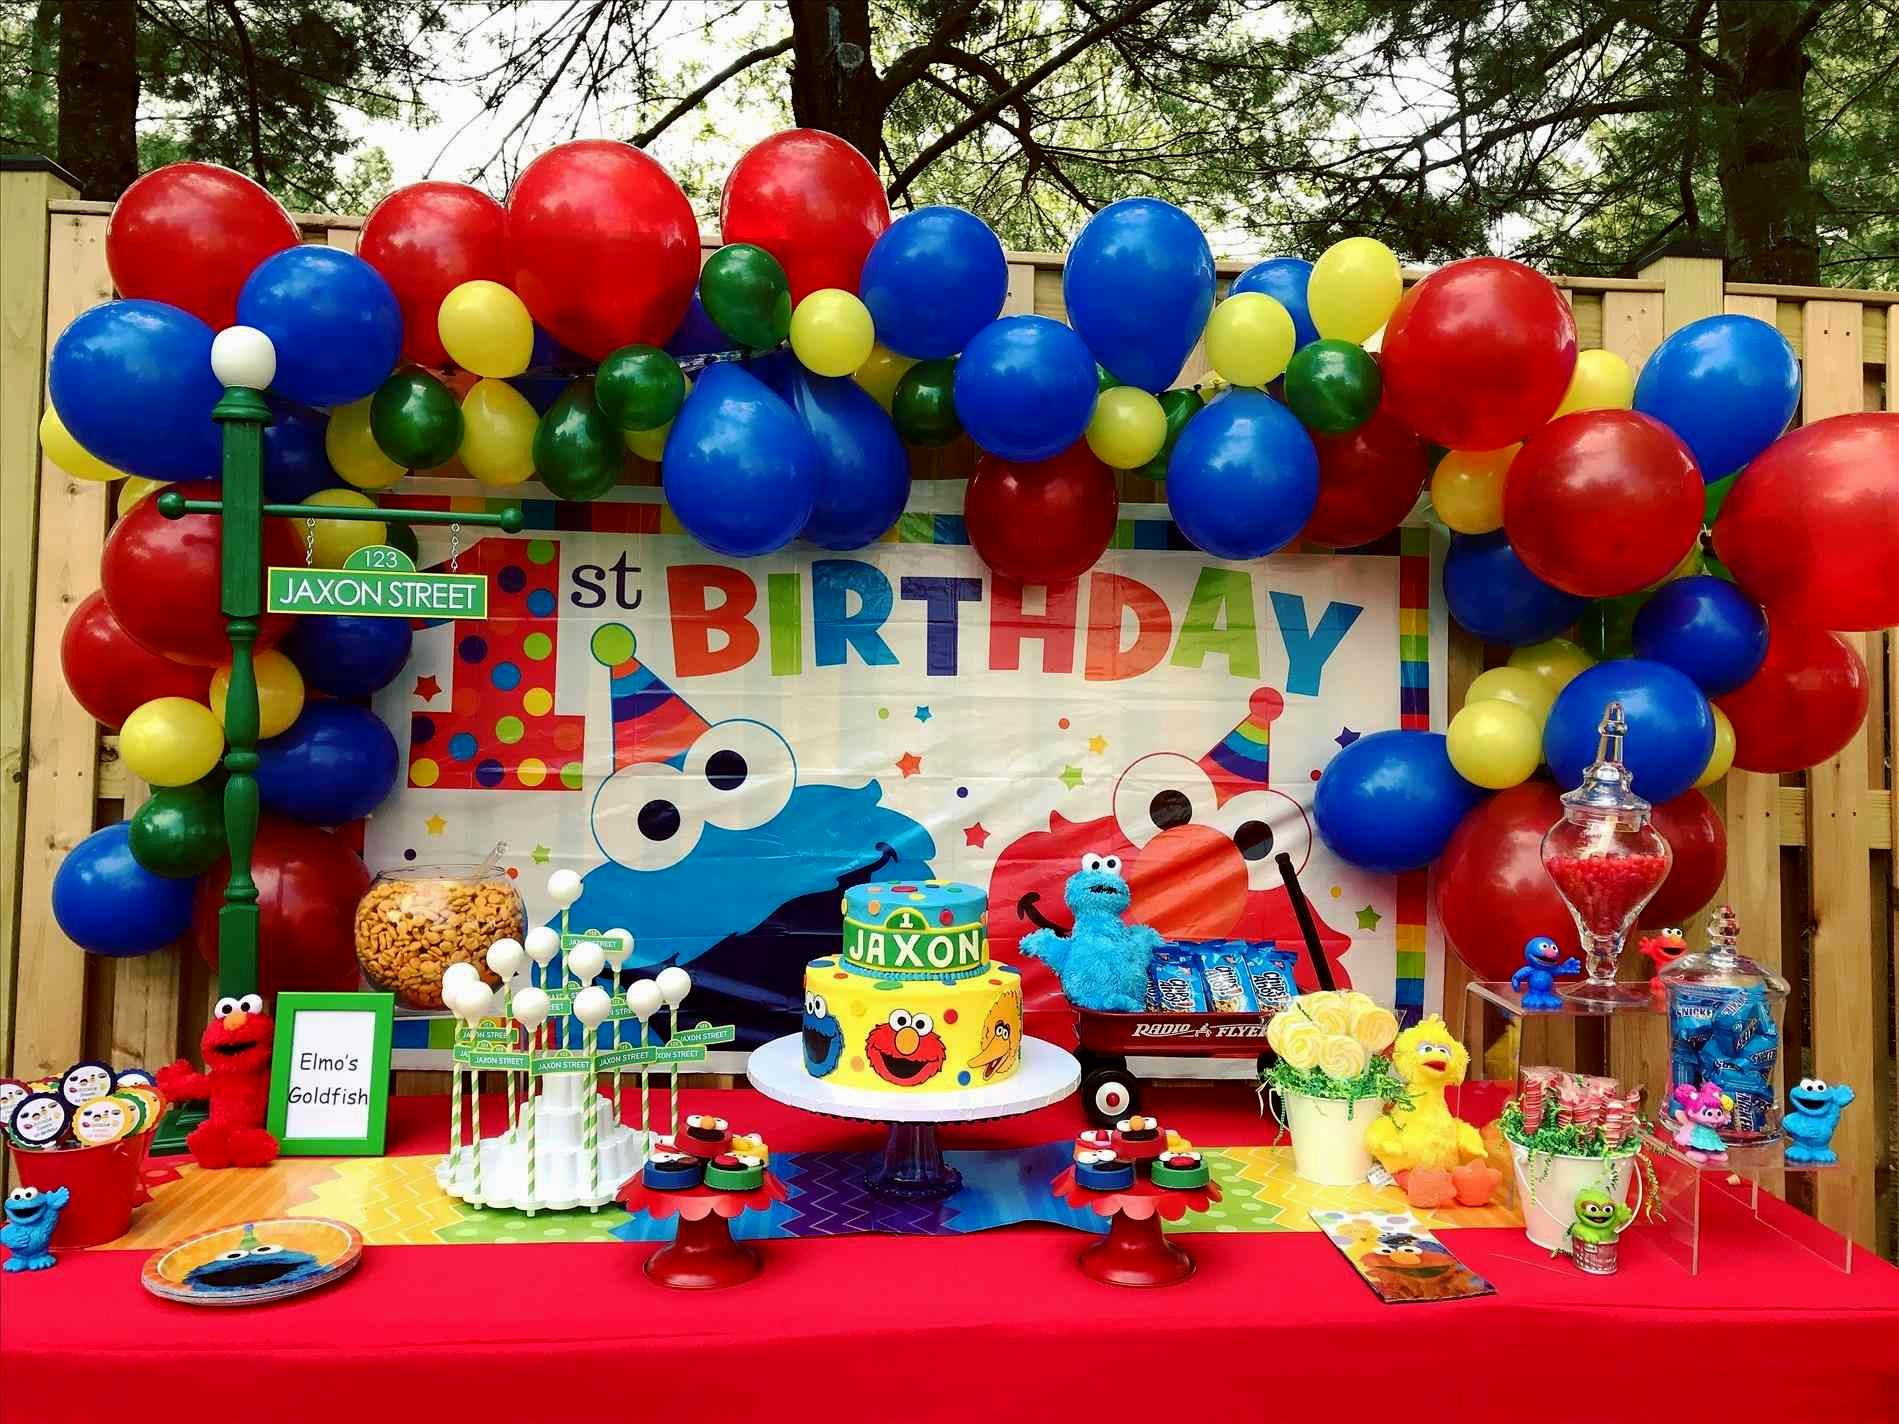 party city birthday themes ; unique-party-city-birthday-themes-photo-33-top-ideas-pertaining-to-party-city-birthday-themes-that-oneself-shouldn8217t-know-and-could-produce-yourself-encouraged